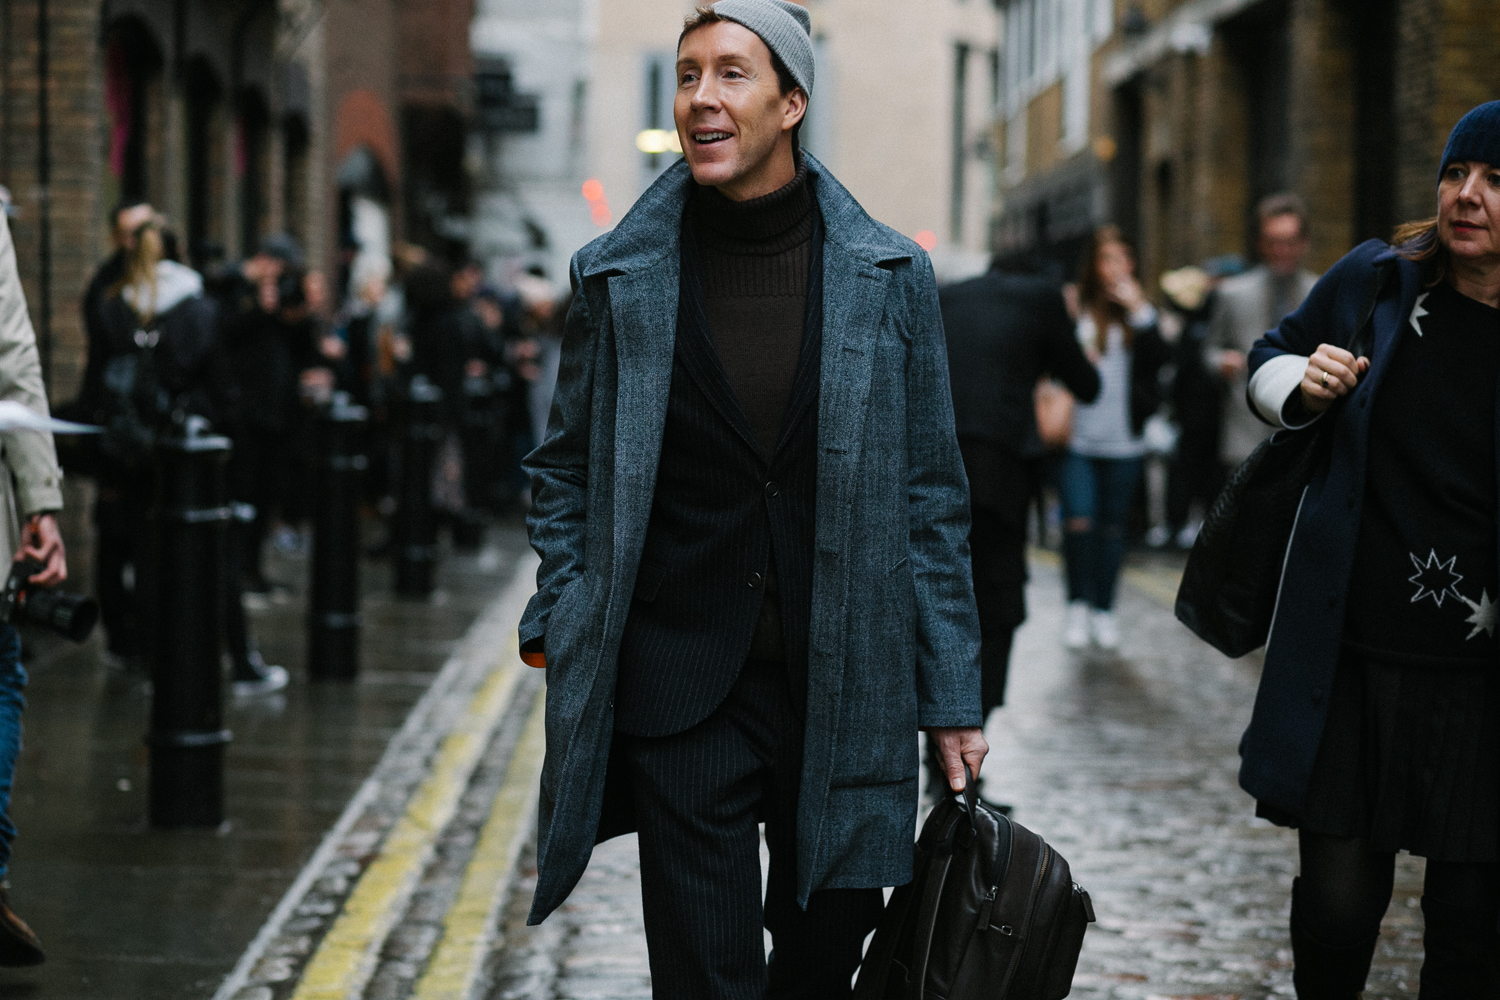 LFWM_AW17_DAY2-EricJennings-7016.jpg